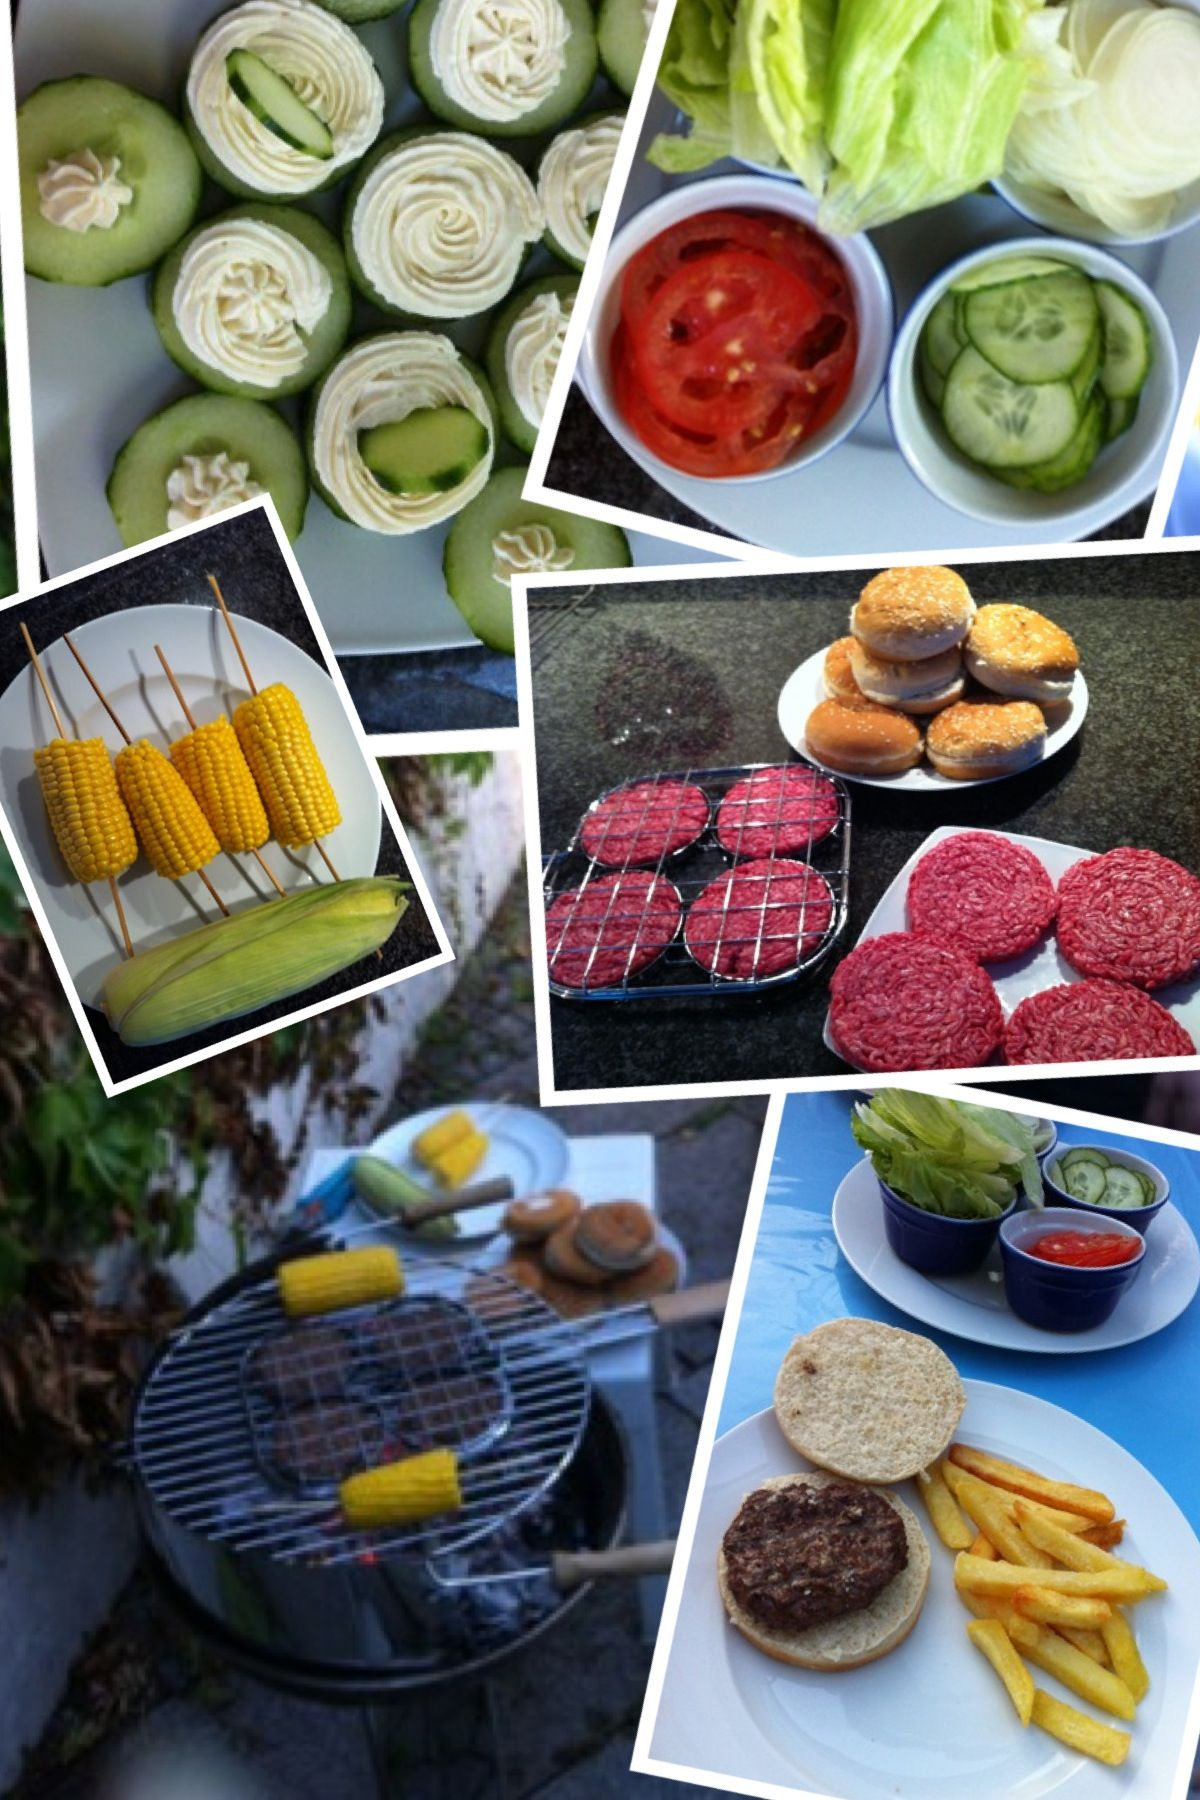 We Germans really tend to overcook our corn cobs...grilling it with the husk was perfect!